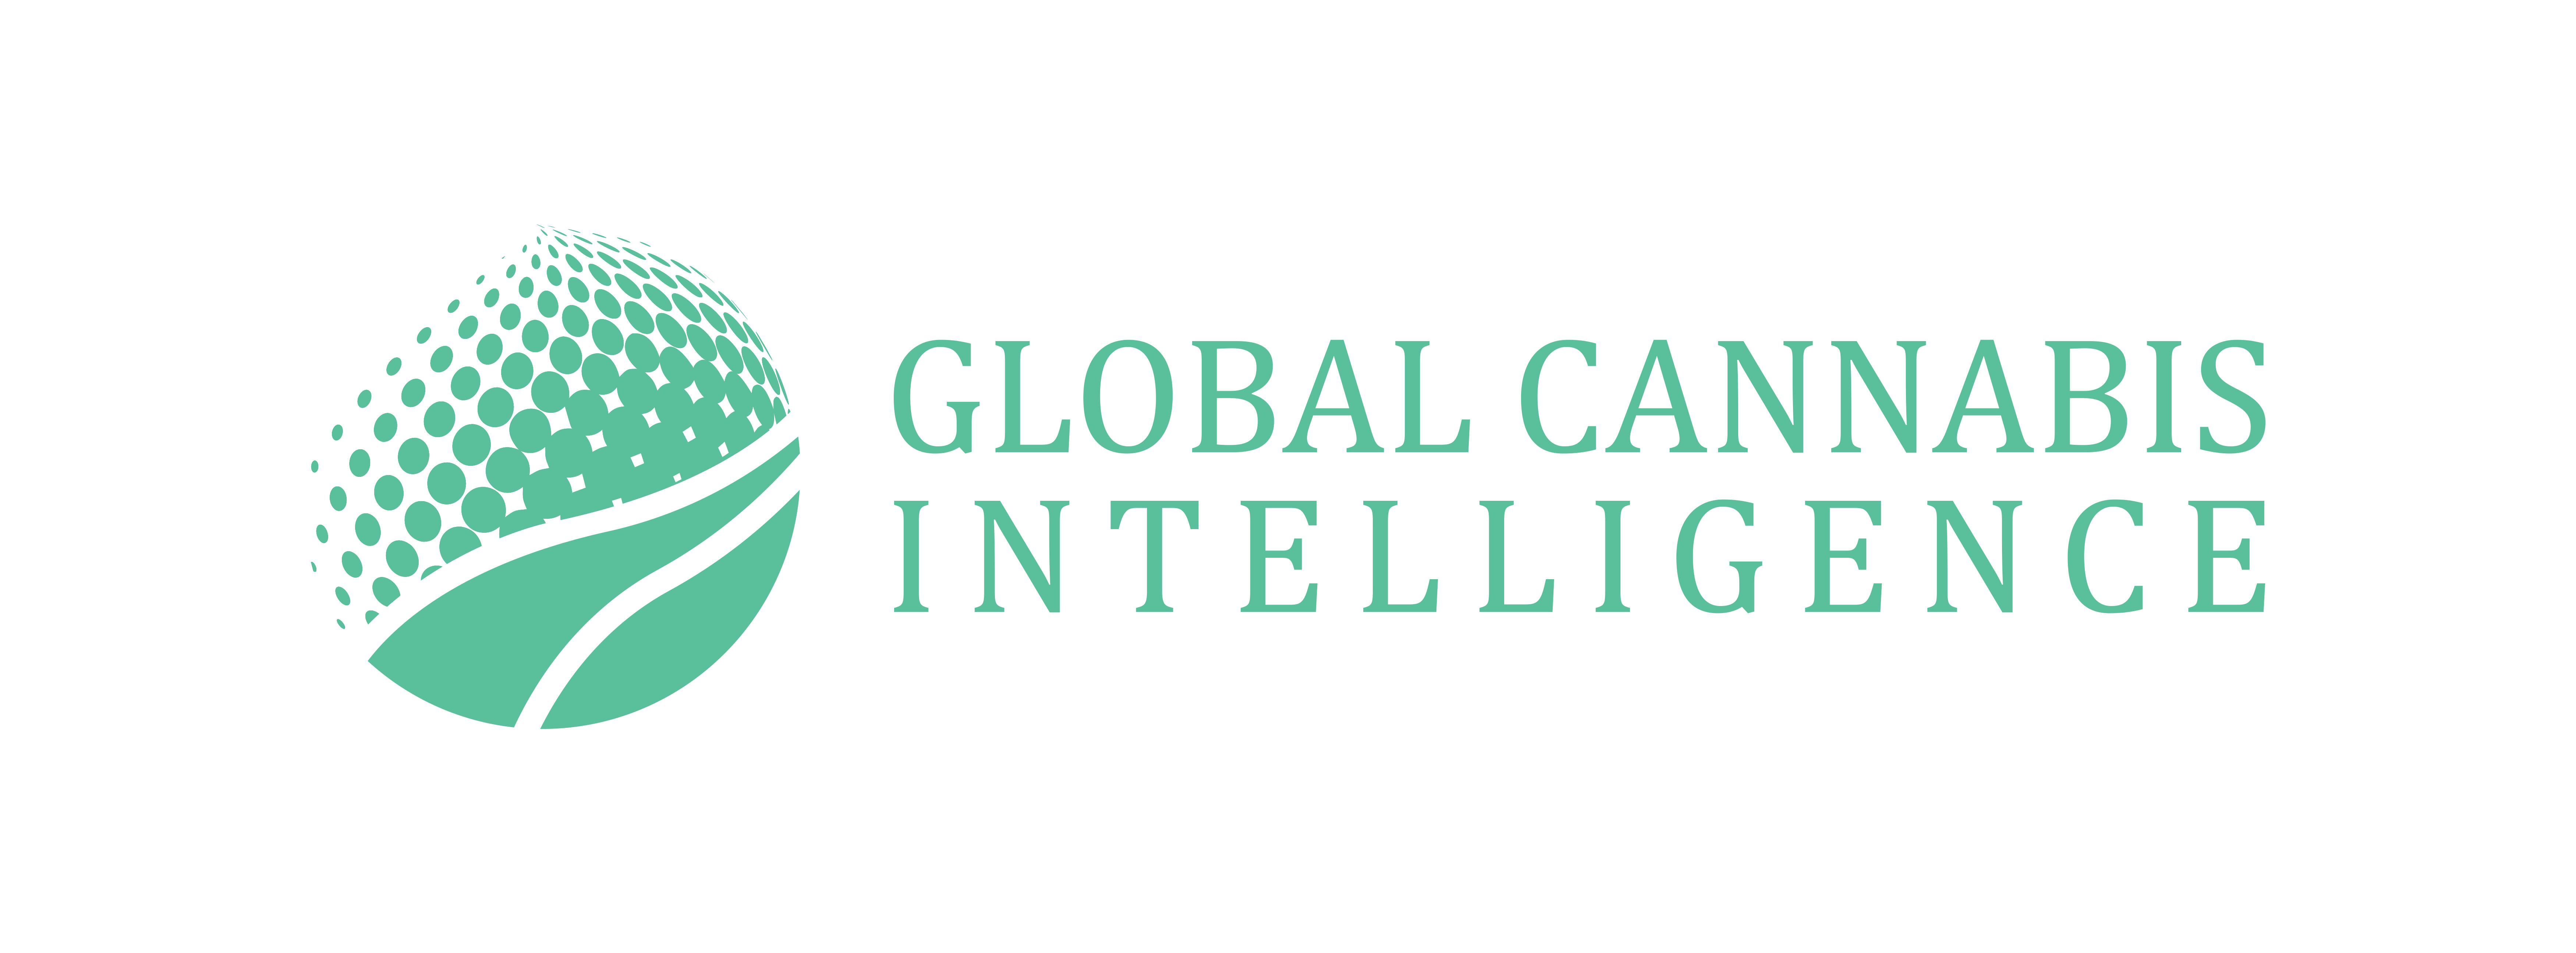 Global Cannabis Intelligence